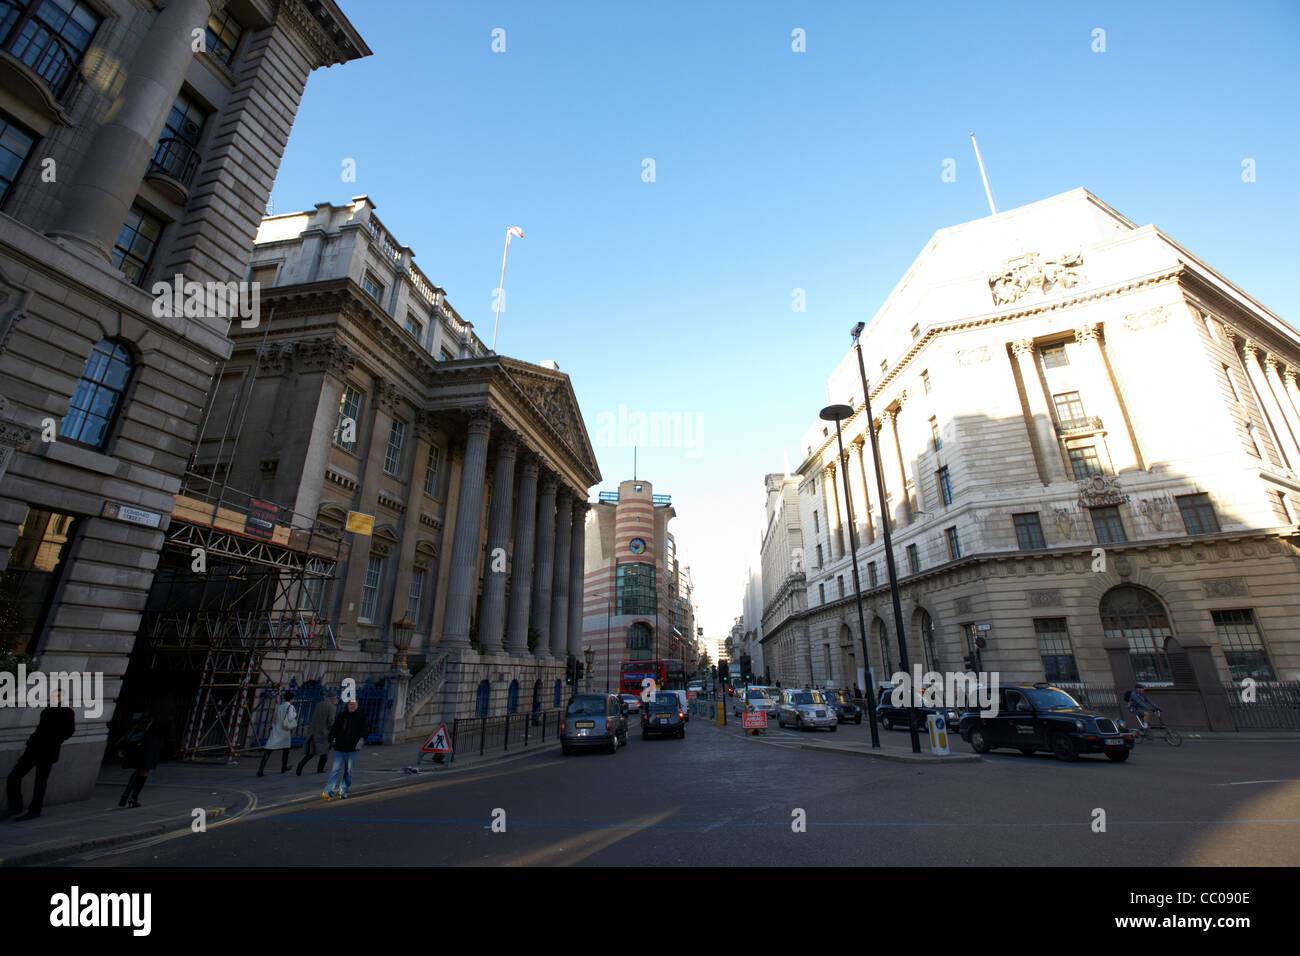 bank junction of lombard street, mansion house street princes street in the financial area of the city of london - Stock Image